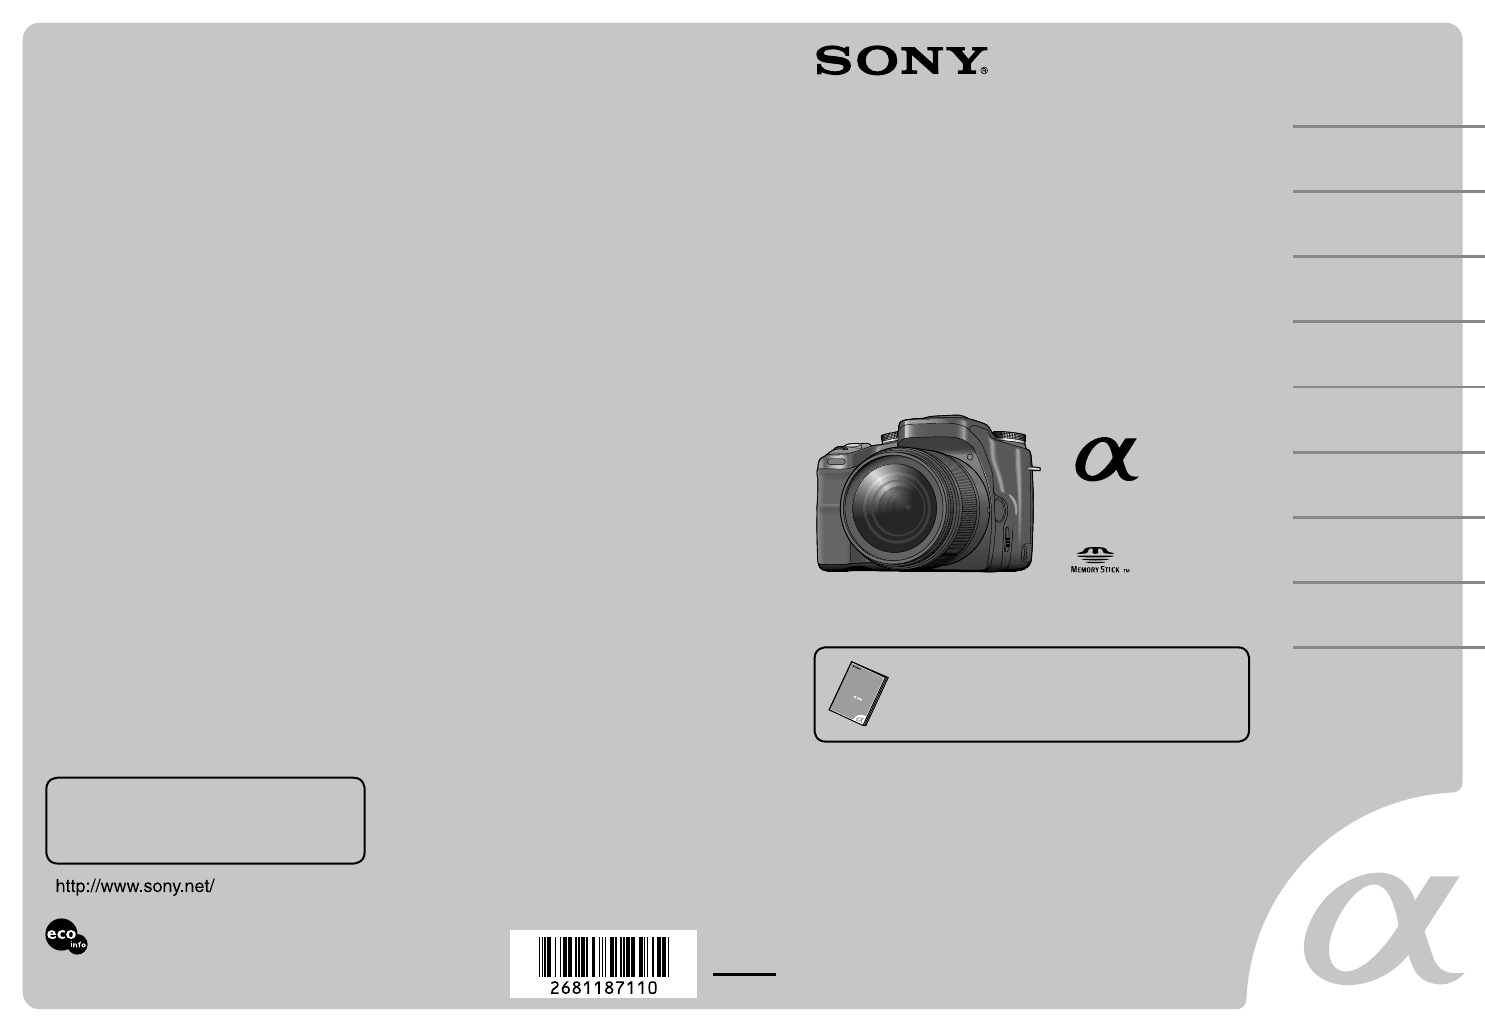 sony digital camera dslr a100 user guide manualsonline com sony dslr-a100 camera manual sony alpha a100 manual download